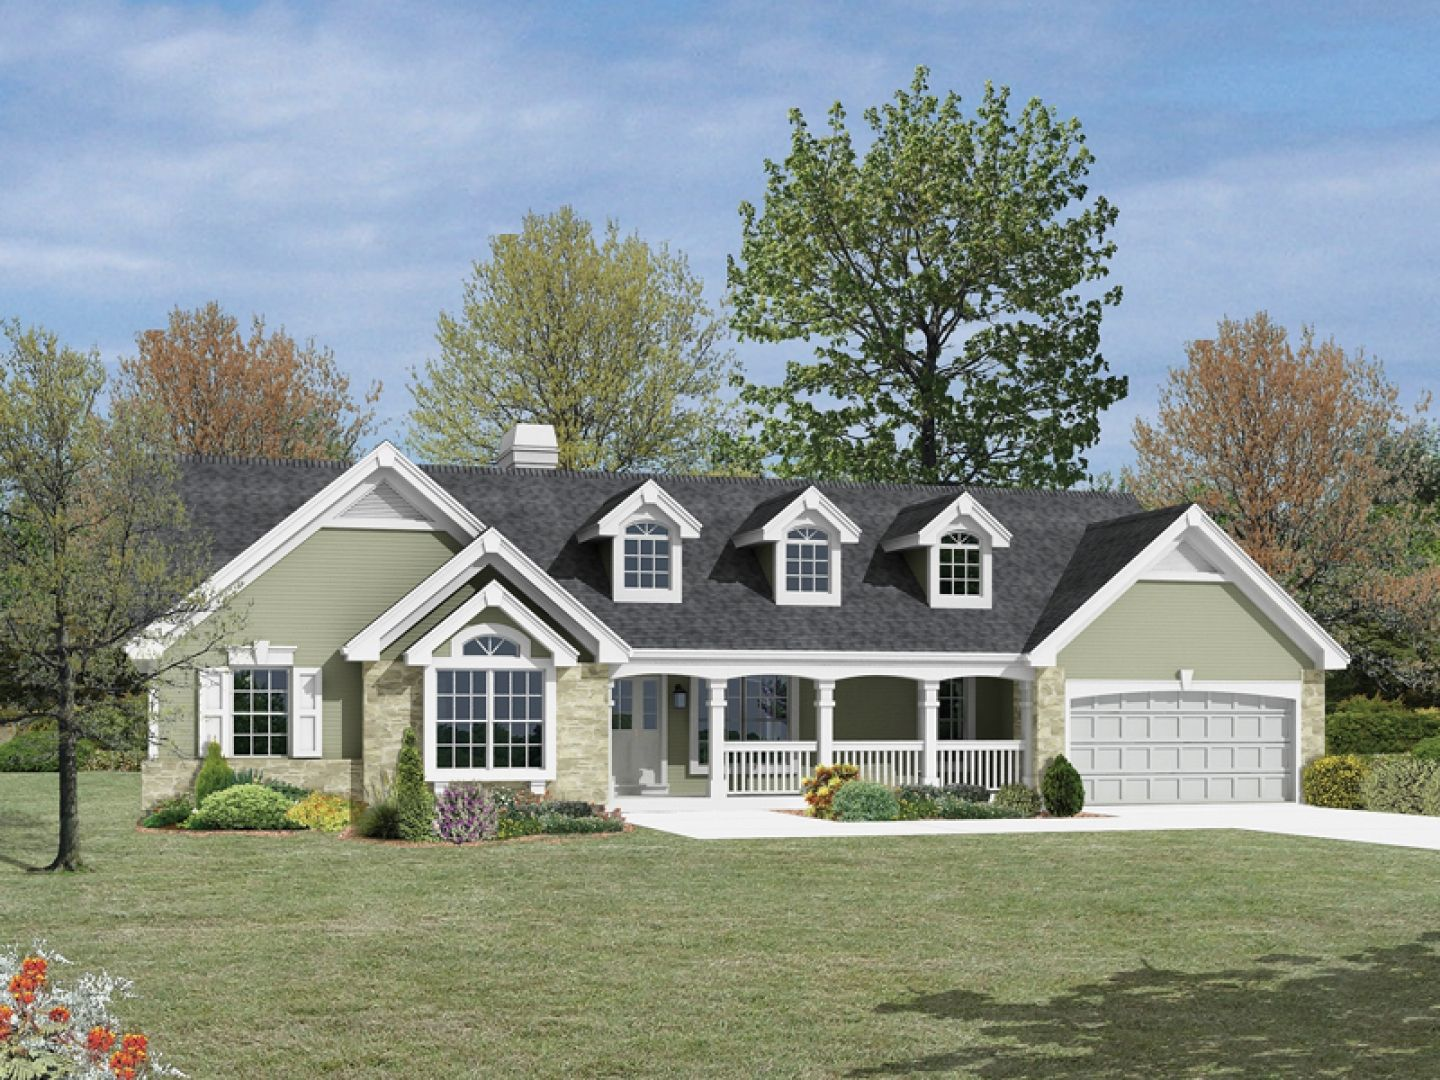 5b08f07a01dc078330b045ee93722d0a - Better Homes And Gardens Home Designer Suite 6.0